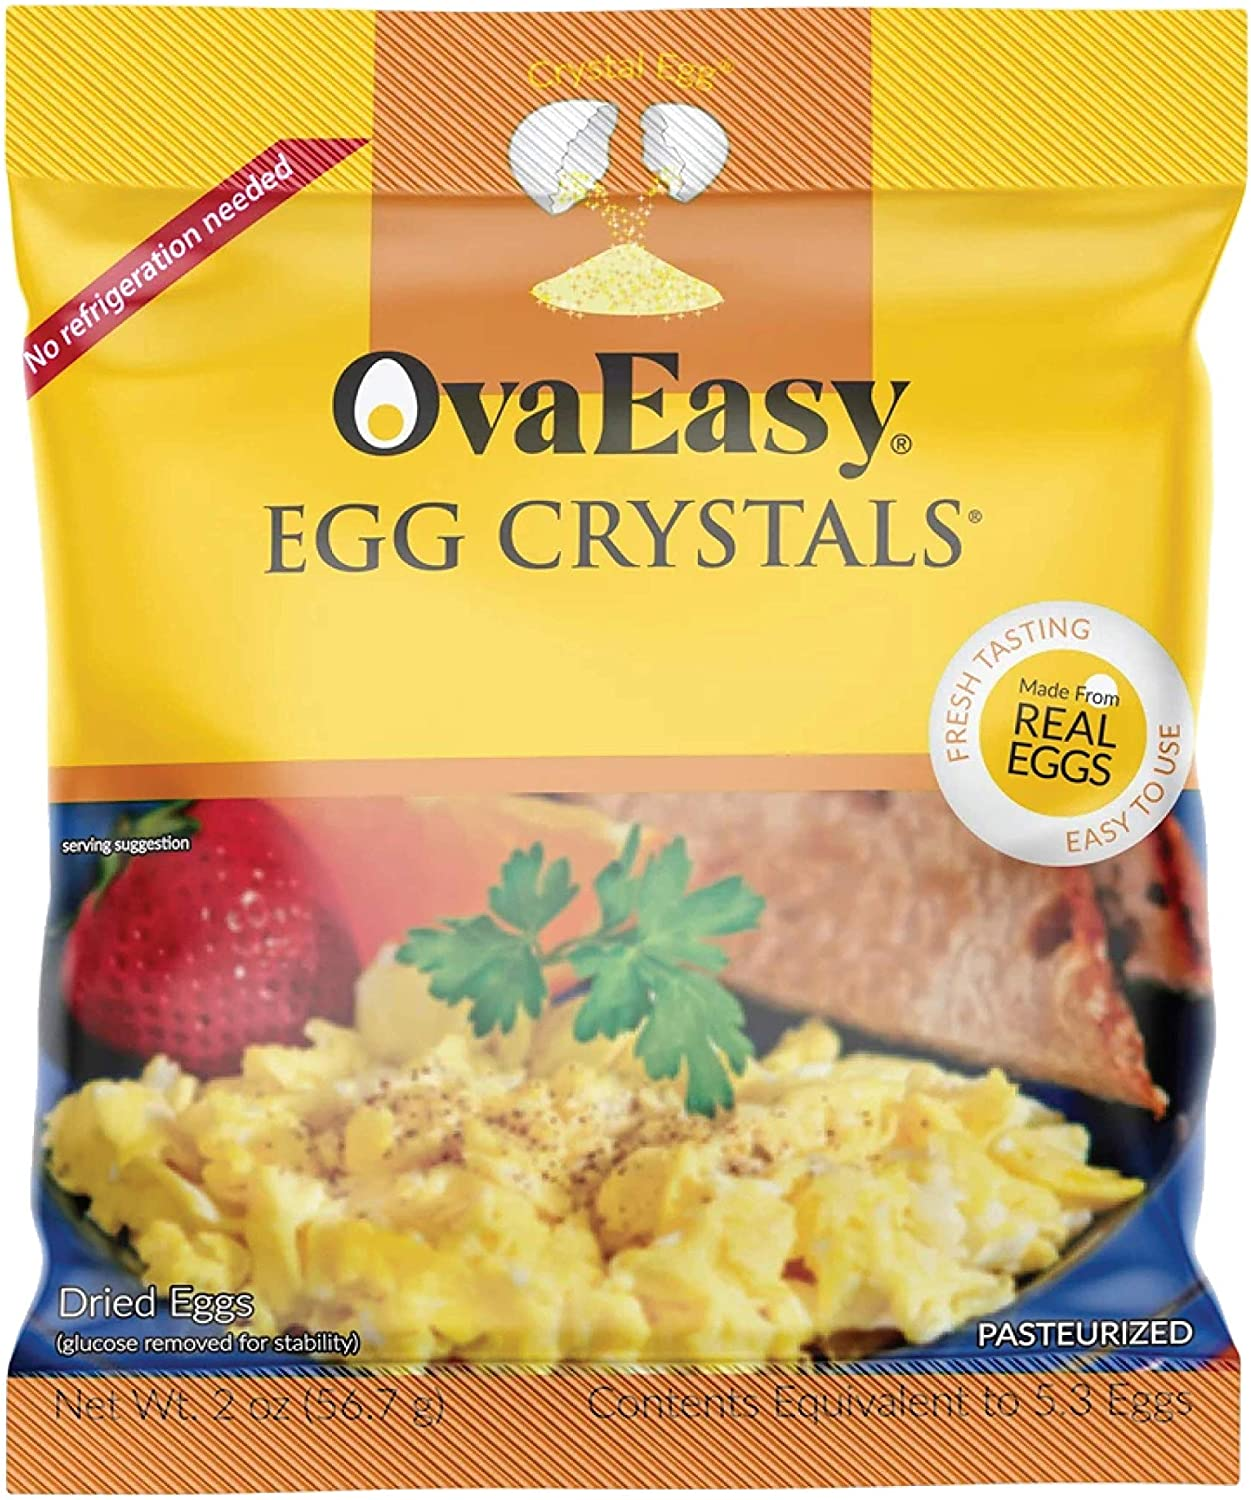 OvaEasy Whole Egg Crystals, All-Natural Powdered Eggs for Long-Term Storage, Pasteurized Egg Powder from 5 Whole Eggs (2 oz)